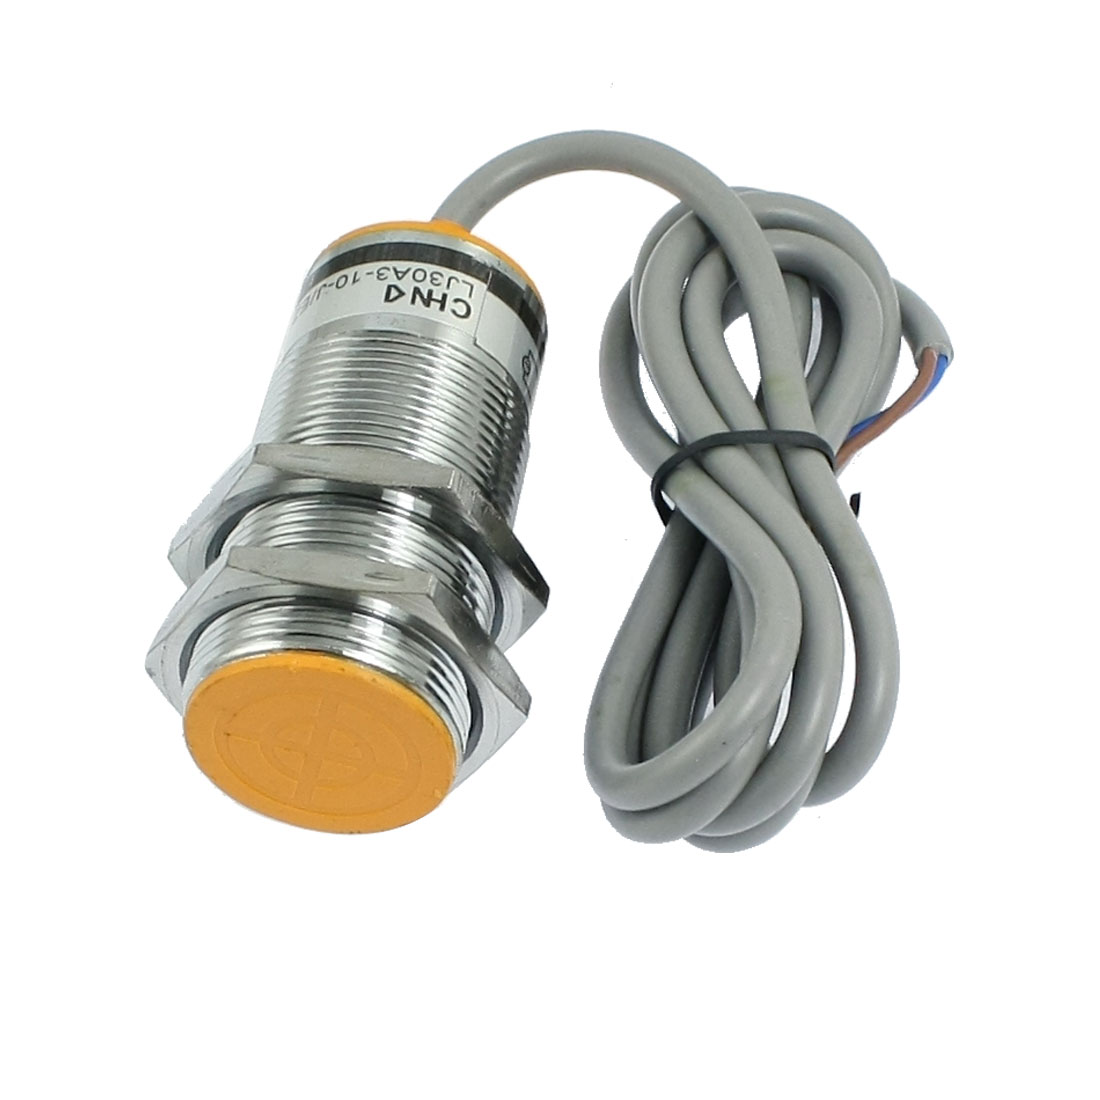 LJ30A3-10-Z/AY 10mm Cylinder Inductive Proximity Sensor Switch NO AC 90-250V